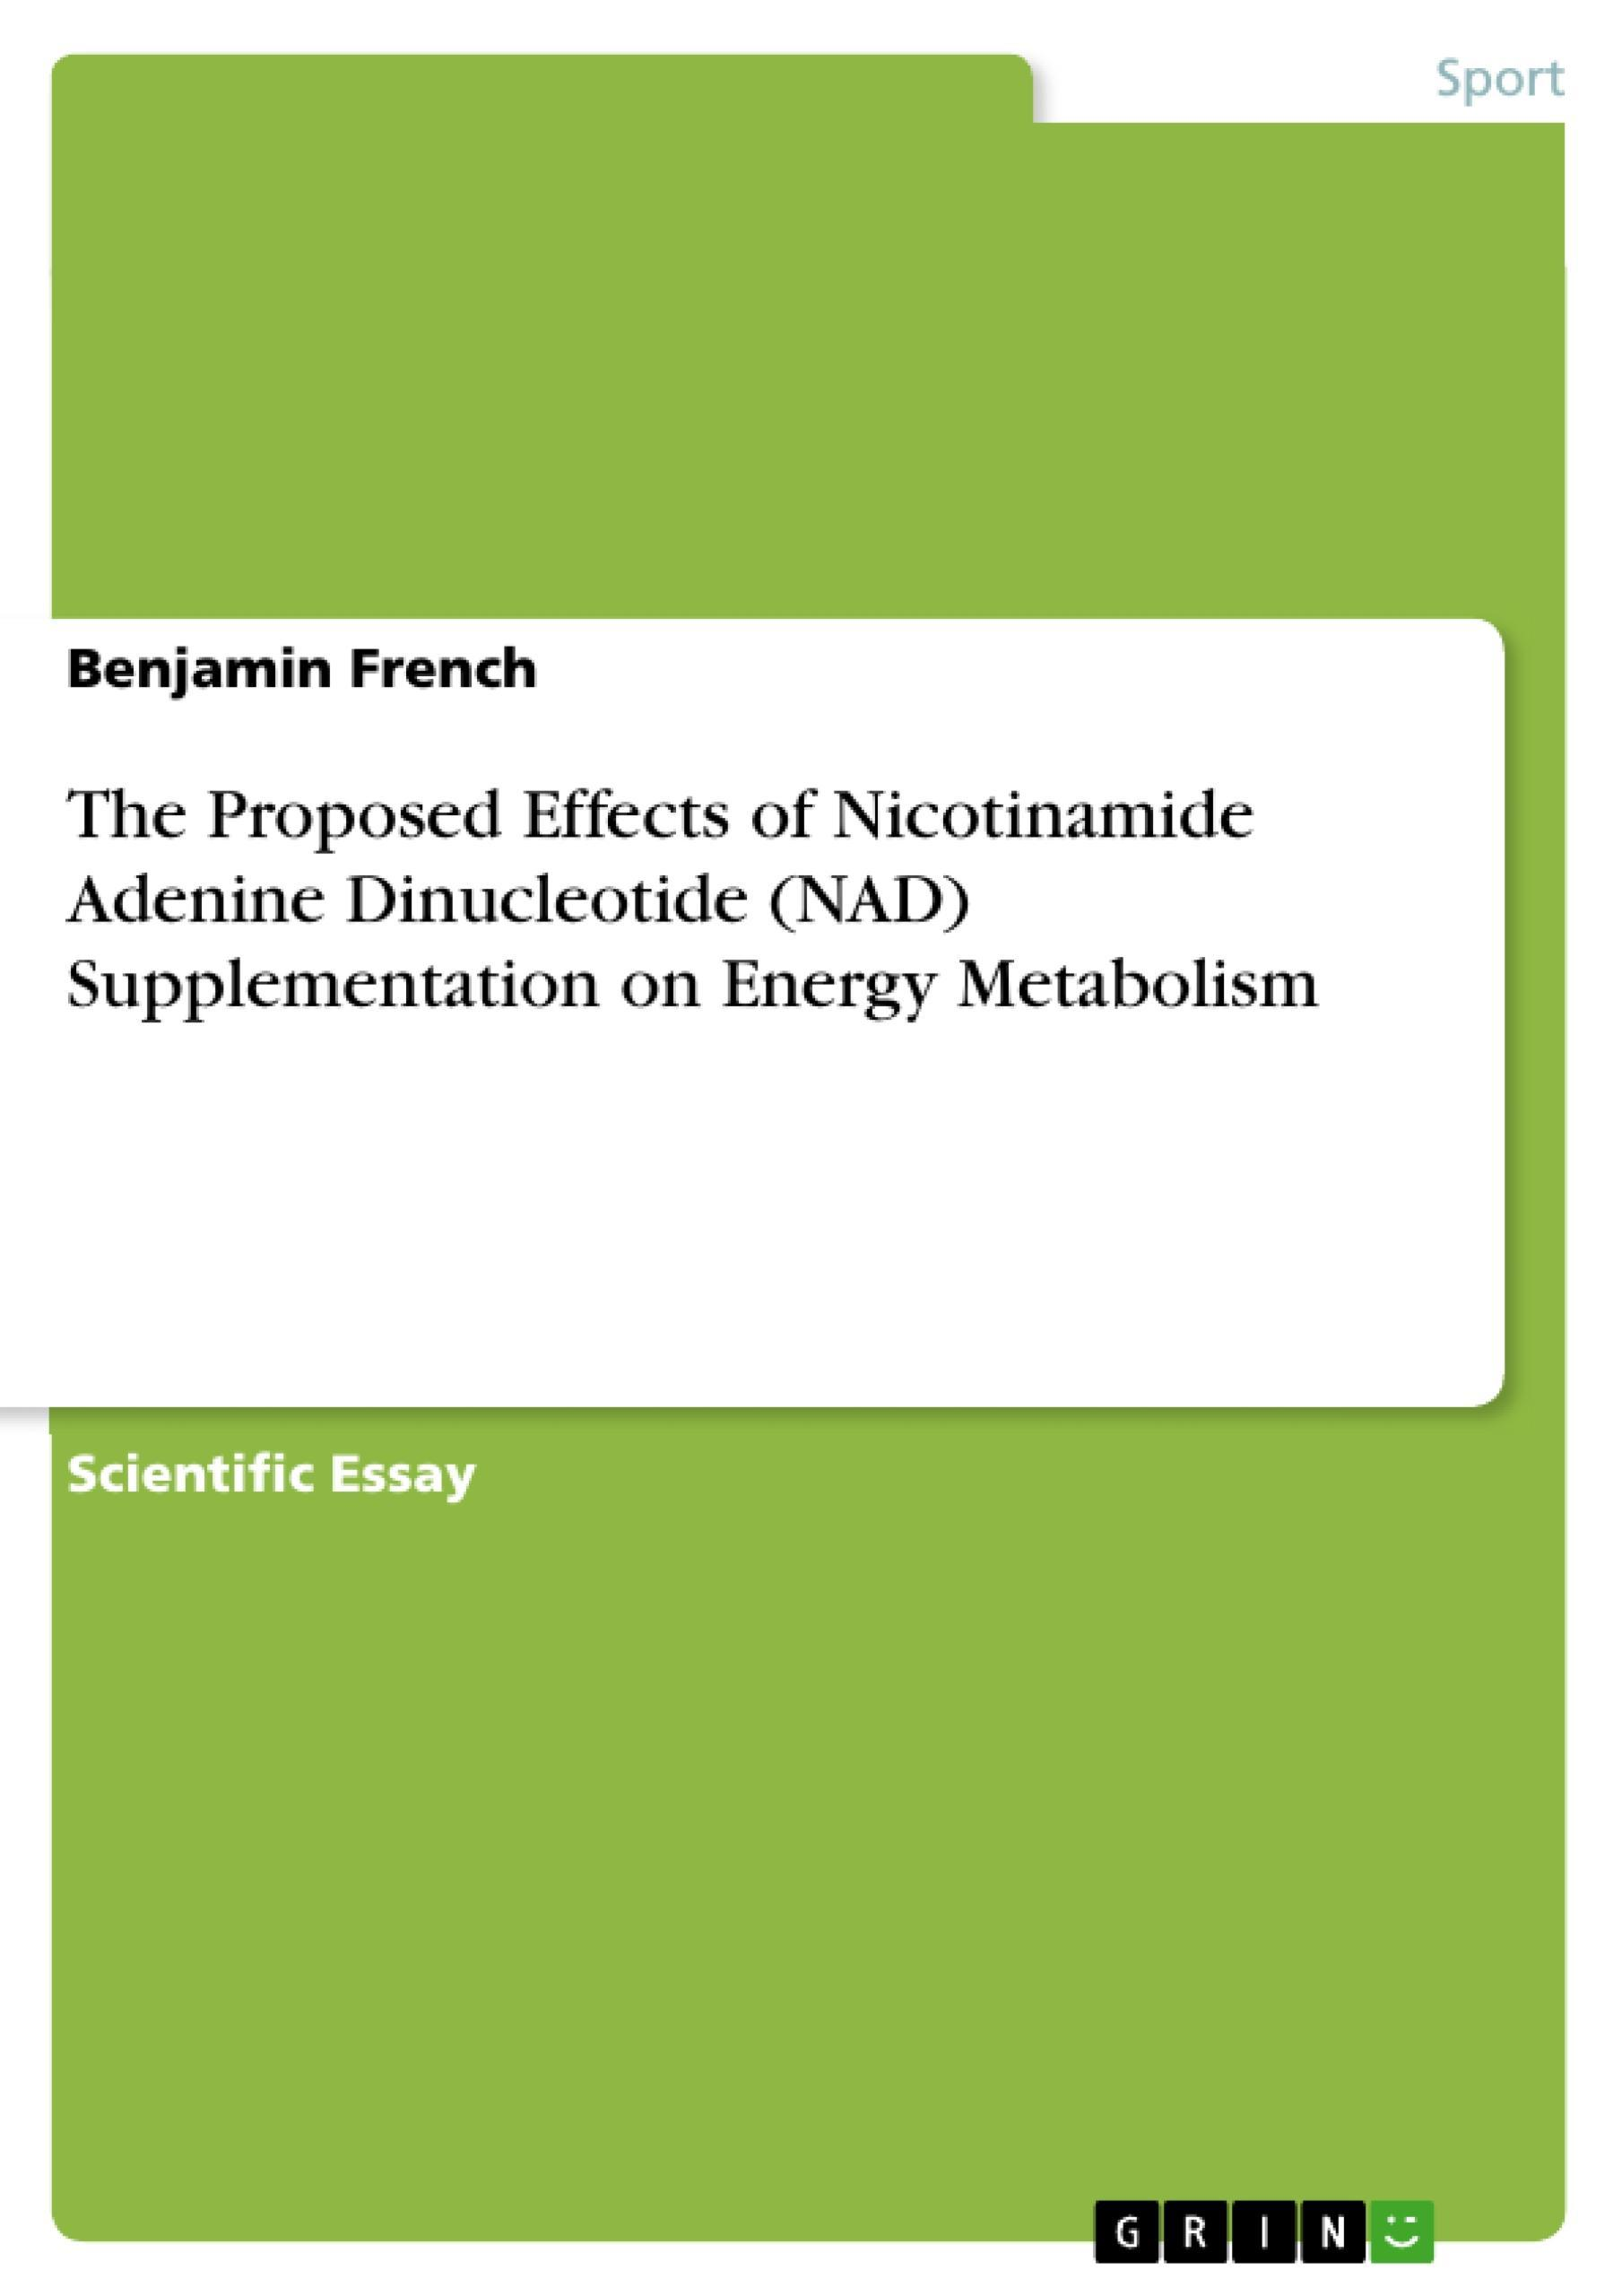 The Proposed Effects of Nicotinamide Adenine Dinucleotide (NAD) Supplementa ...